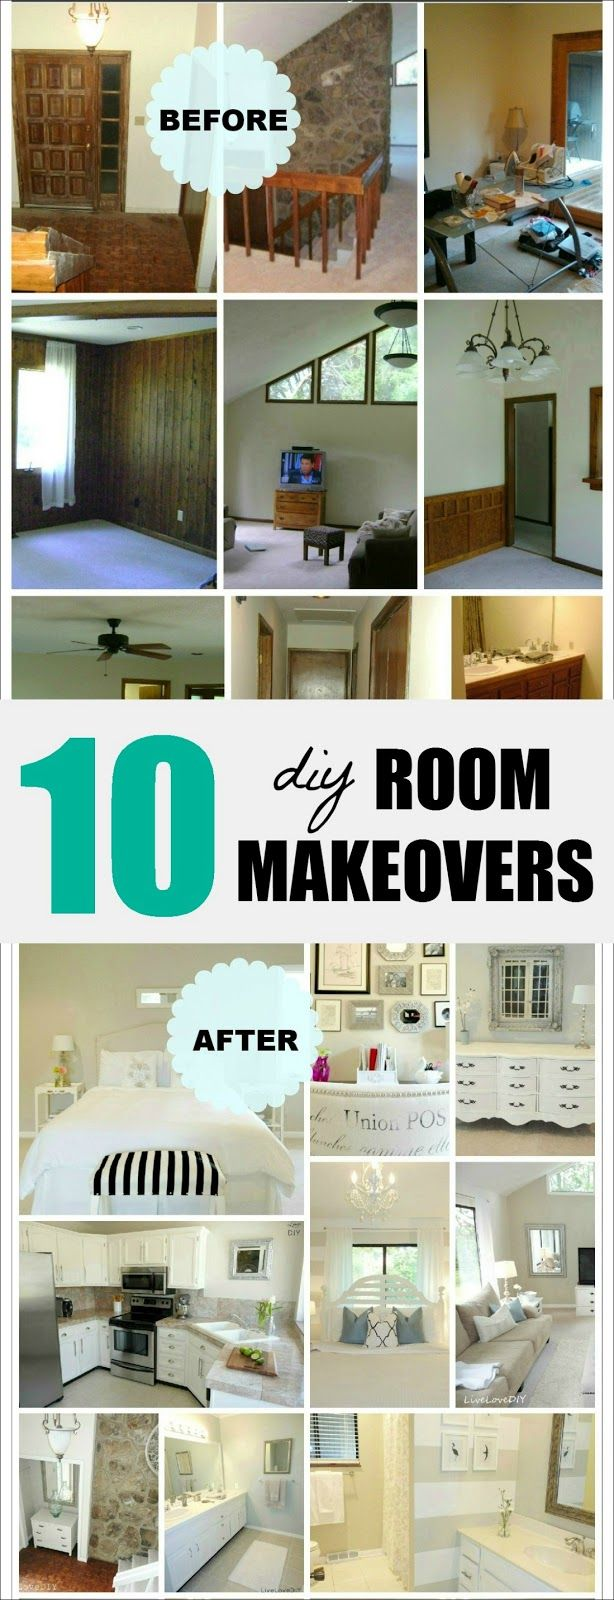 Decor Hacks 10 Inspiring Diy Room Makeovers Done On A Small Budget So Many Great Ideas Che